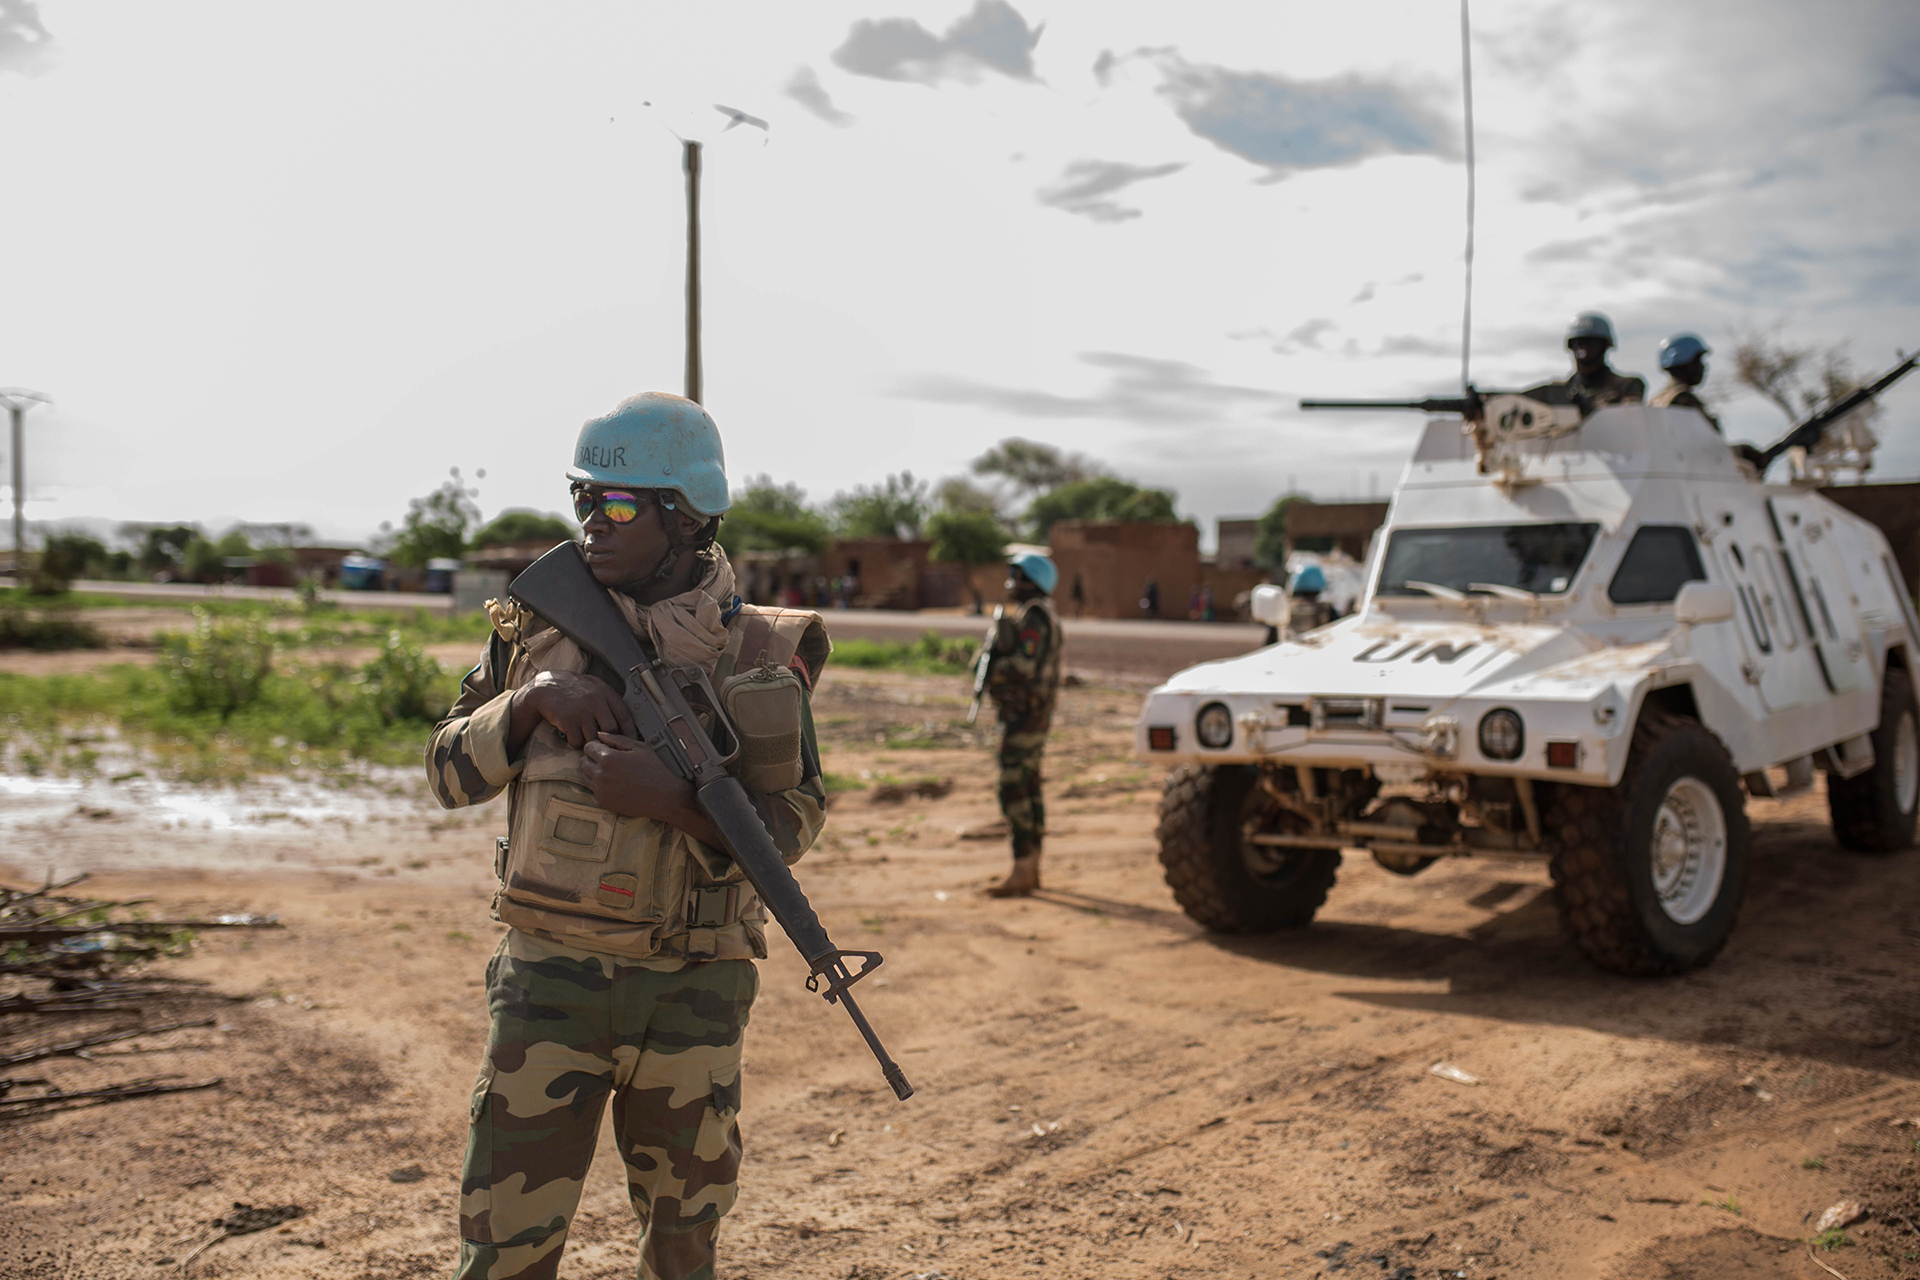 A UN peacekeeper with a gun looking out in front of a UN tank